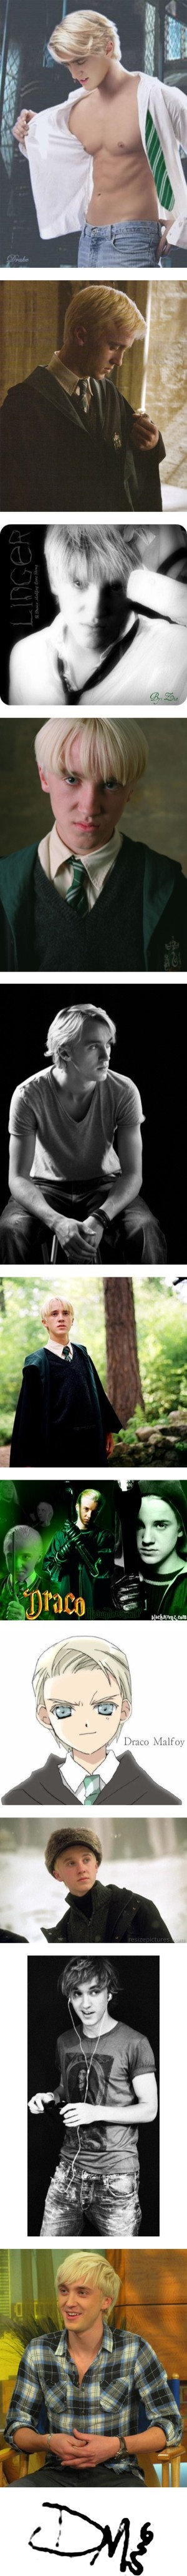 """""""Draco Malfoy ♥"""" by sa-chanx33 ❤ liked on Polyvore"""